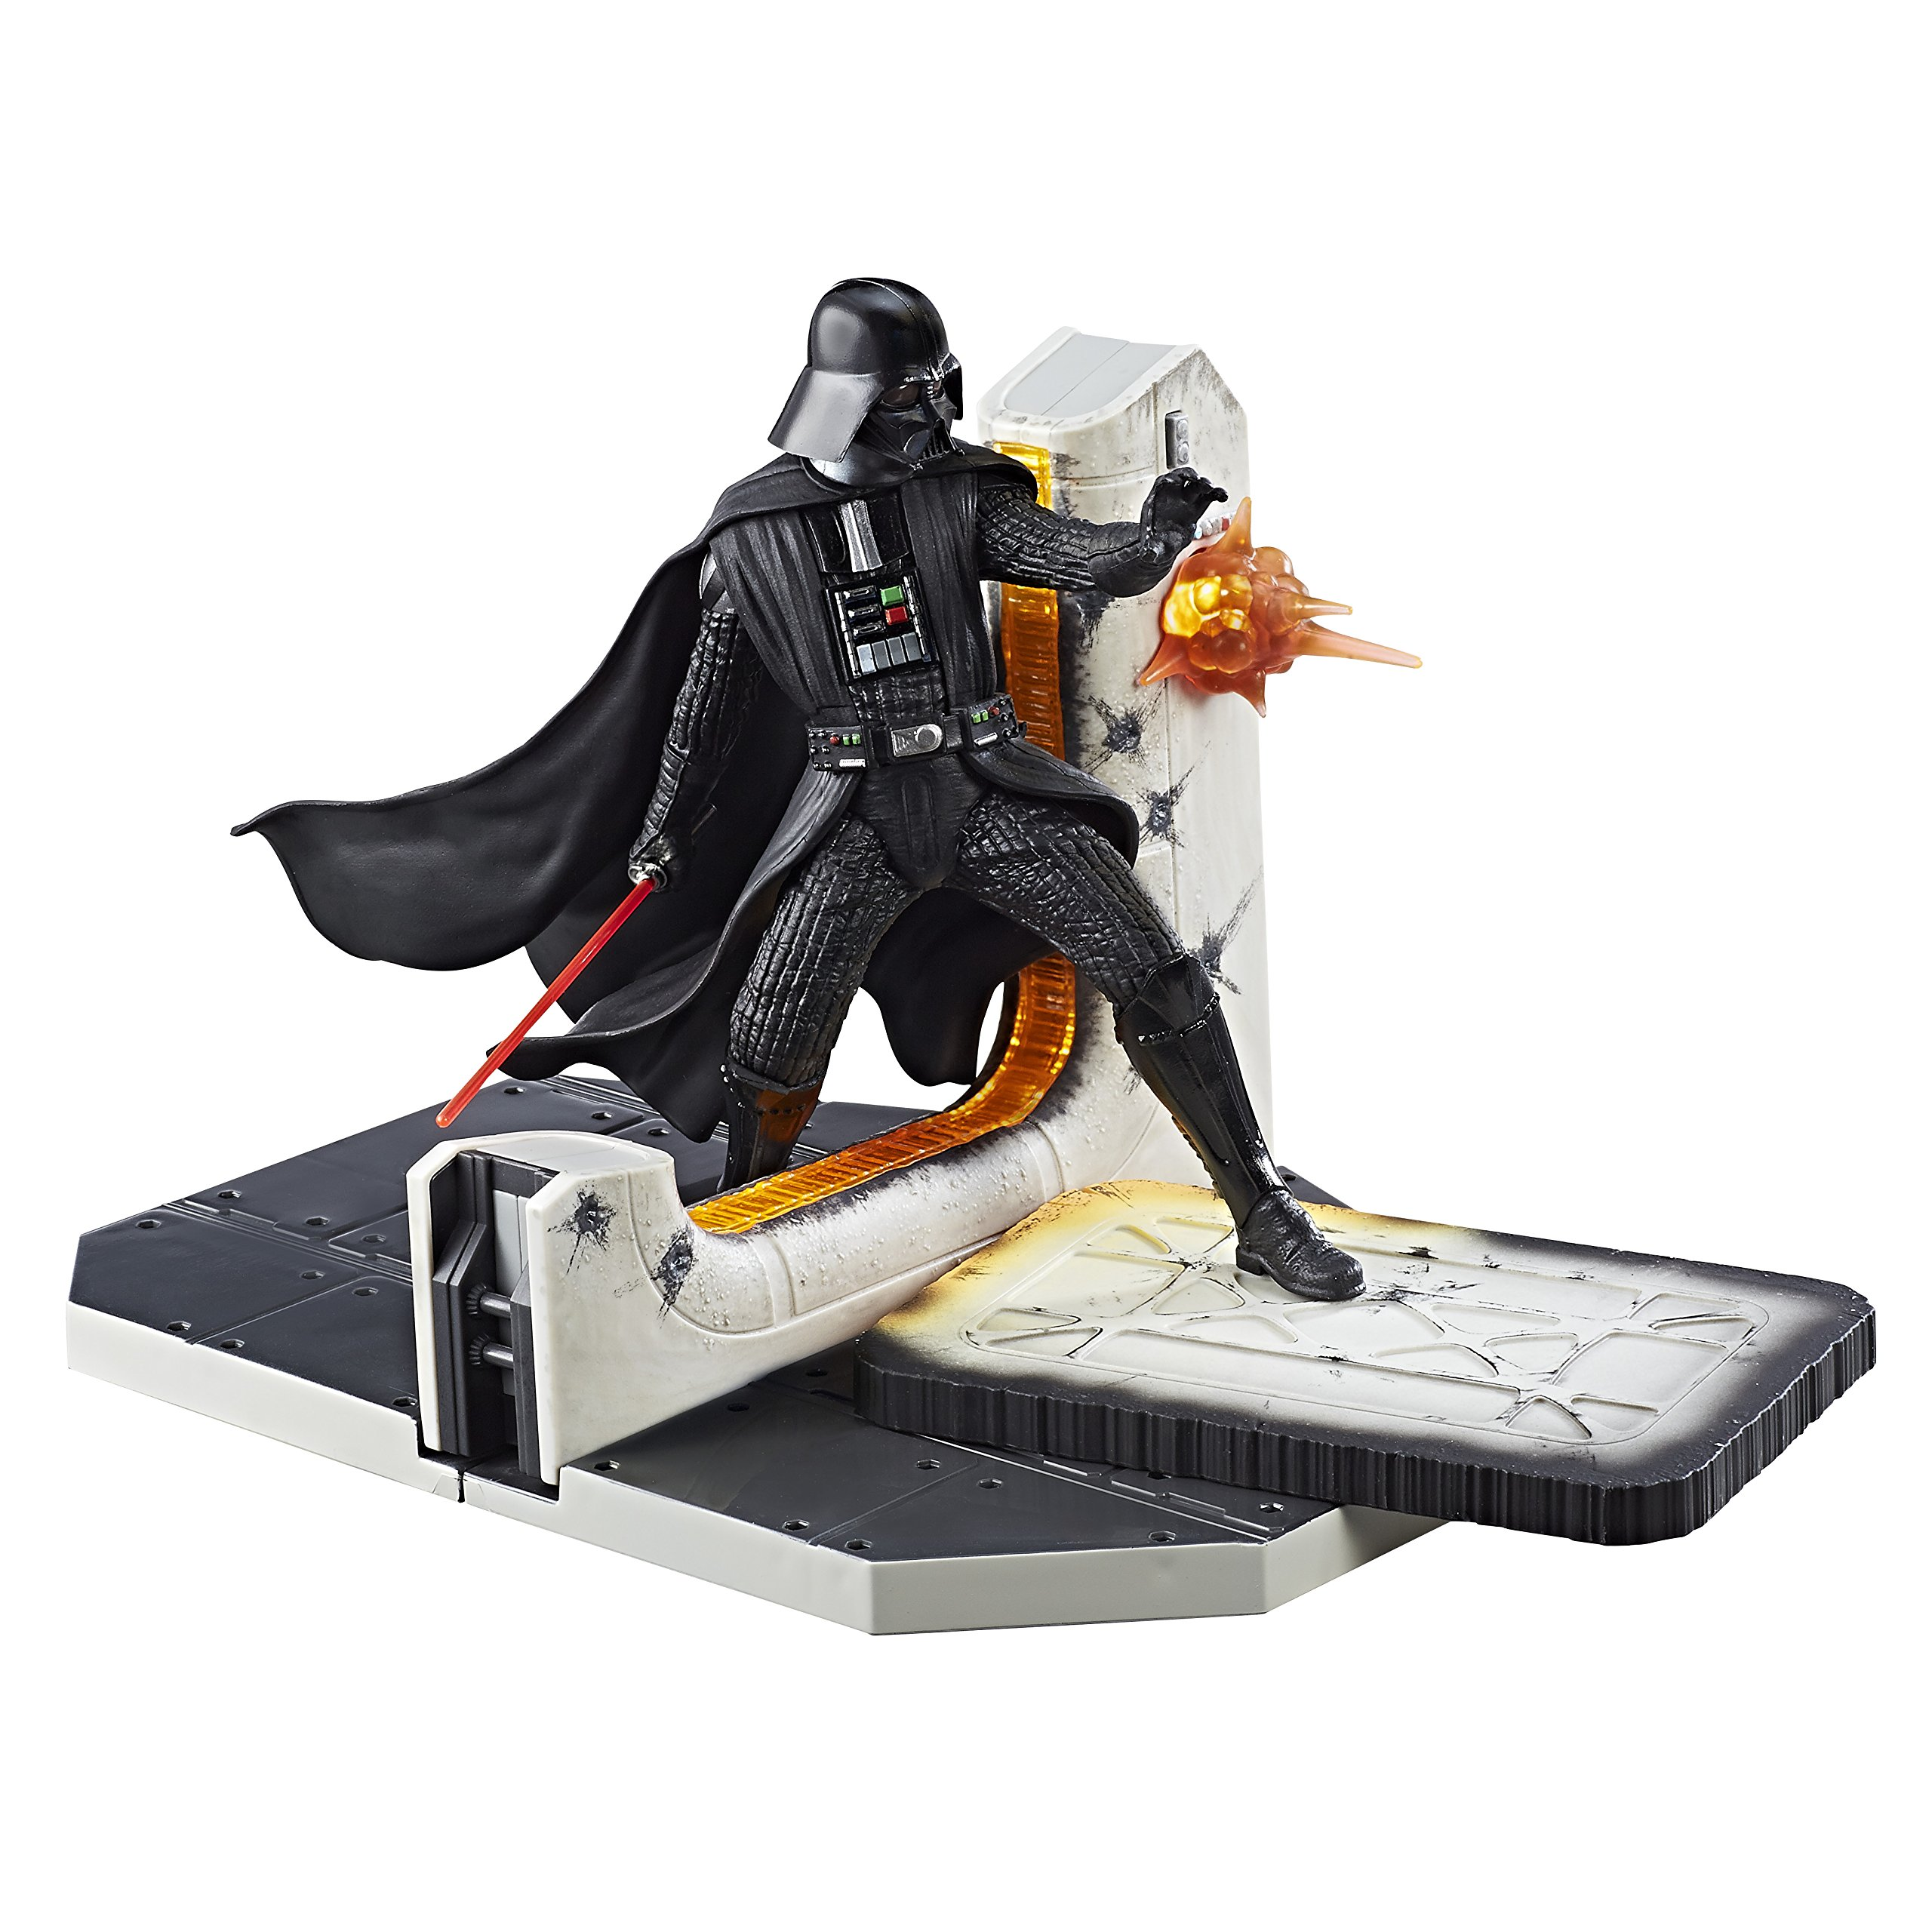 Star Wars Black Series Darth Vader Table Centerpiece - Multiple Light-Up Parts - 2 AAA Batteries by Star Wars